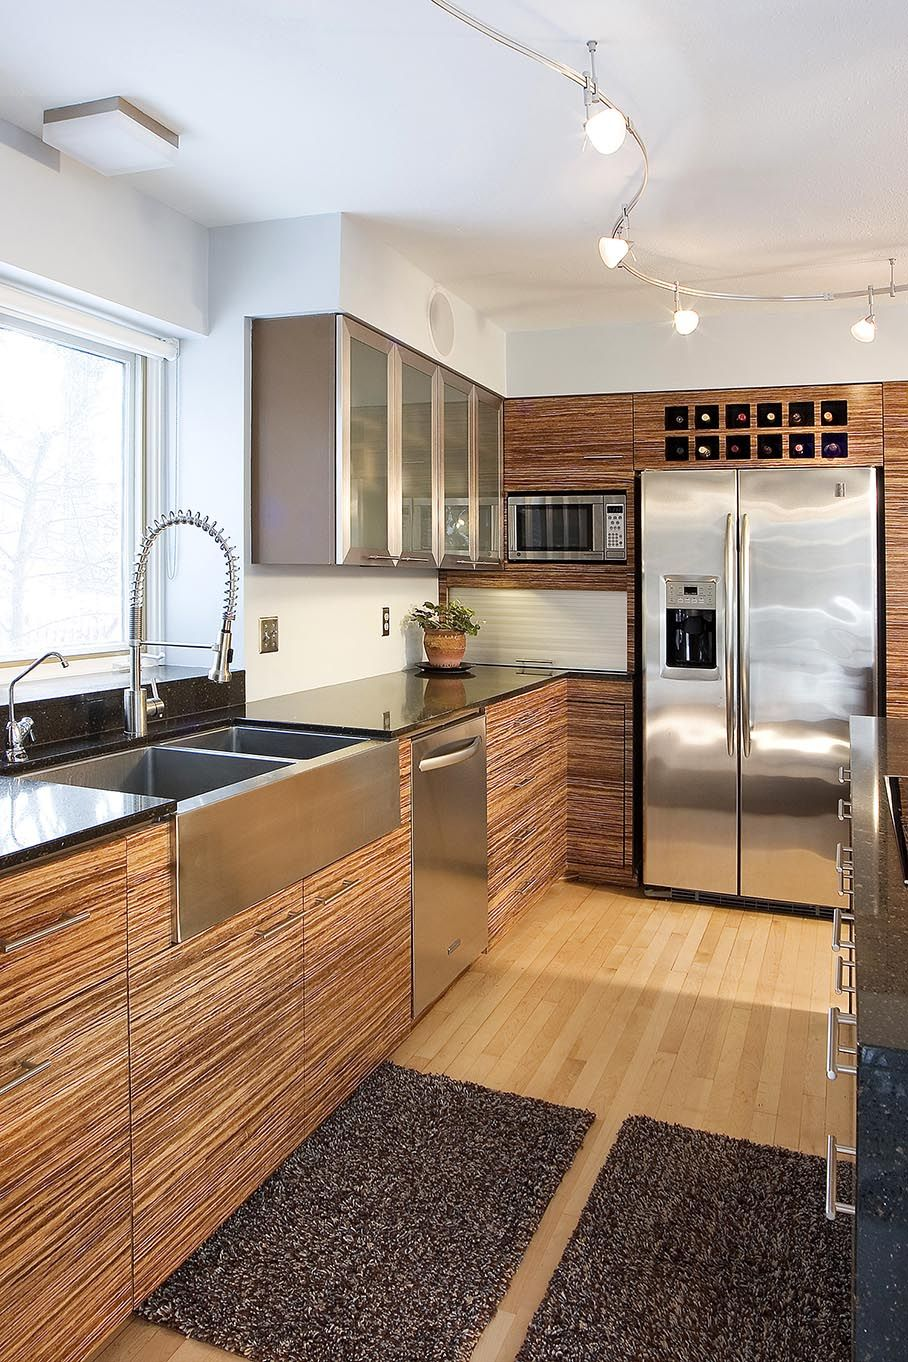 6 Gorgeous Plyboo Bamboo Installs Intectural Bamboo Kitchen Cabinets Kitchen Cabinet Styles Modern Kitchen Cabinets